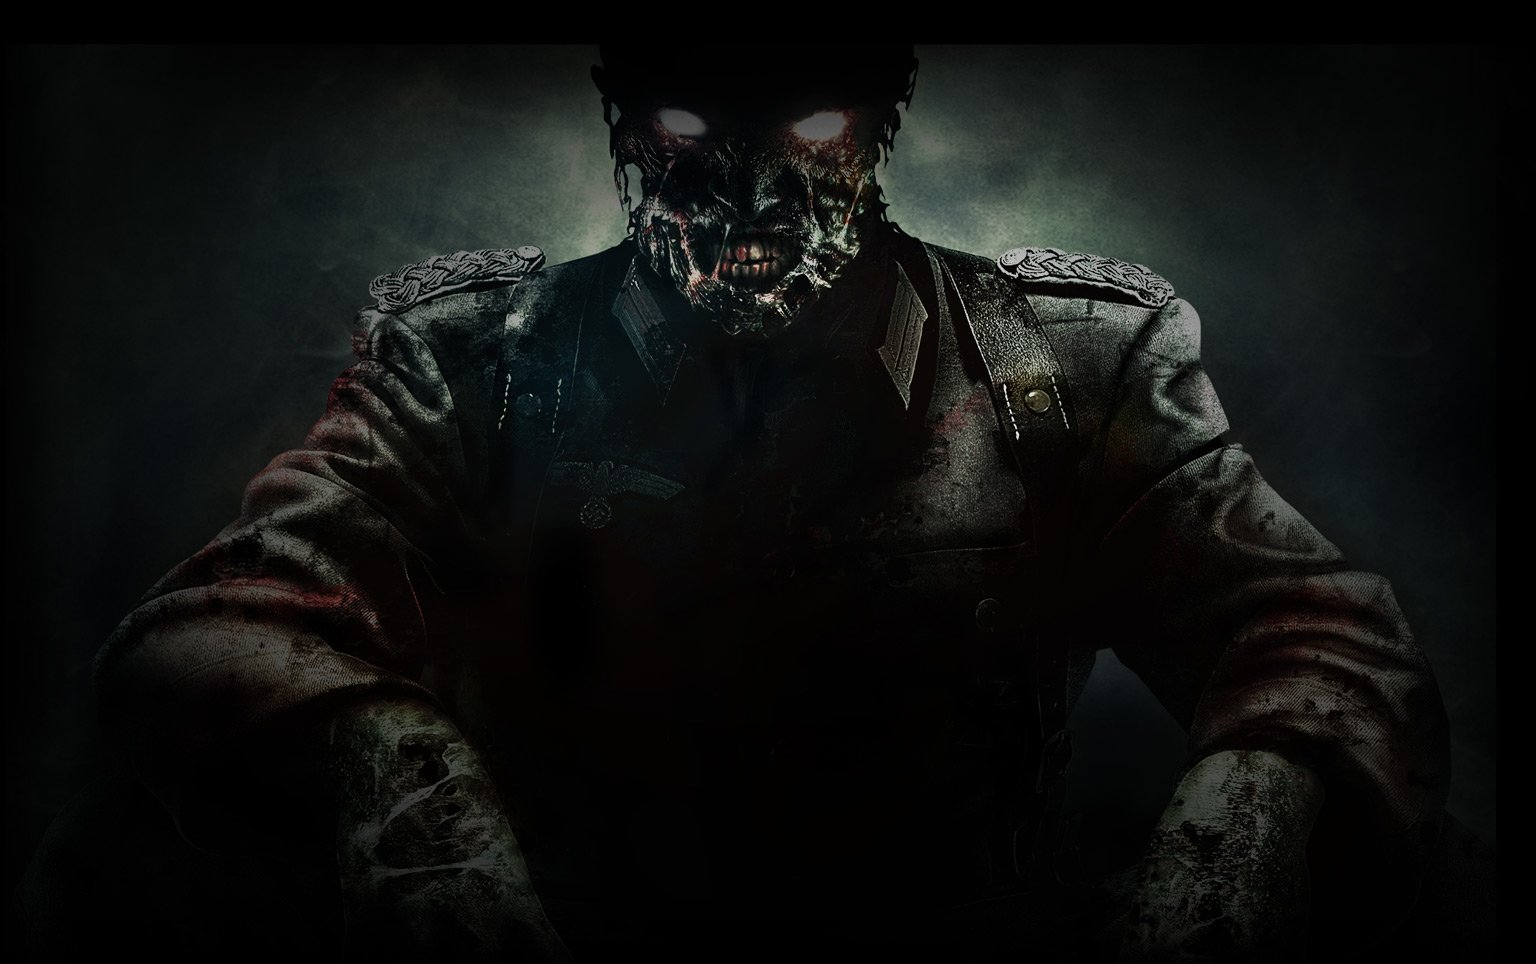 Research paper zombies wallpaper